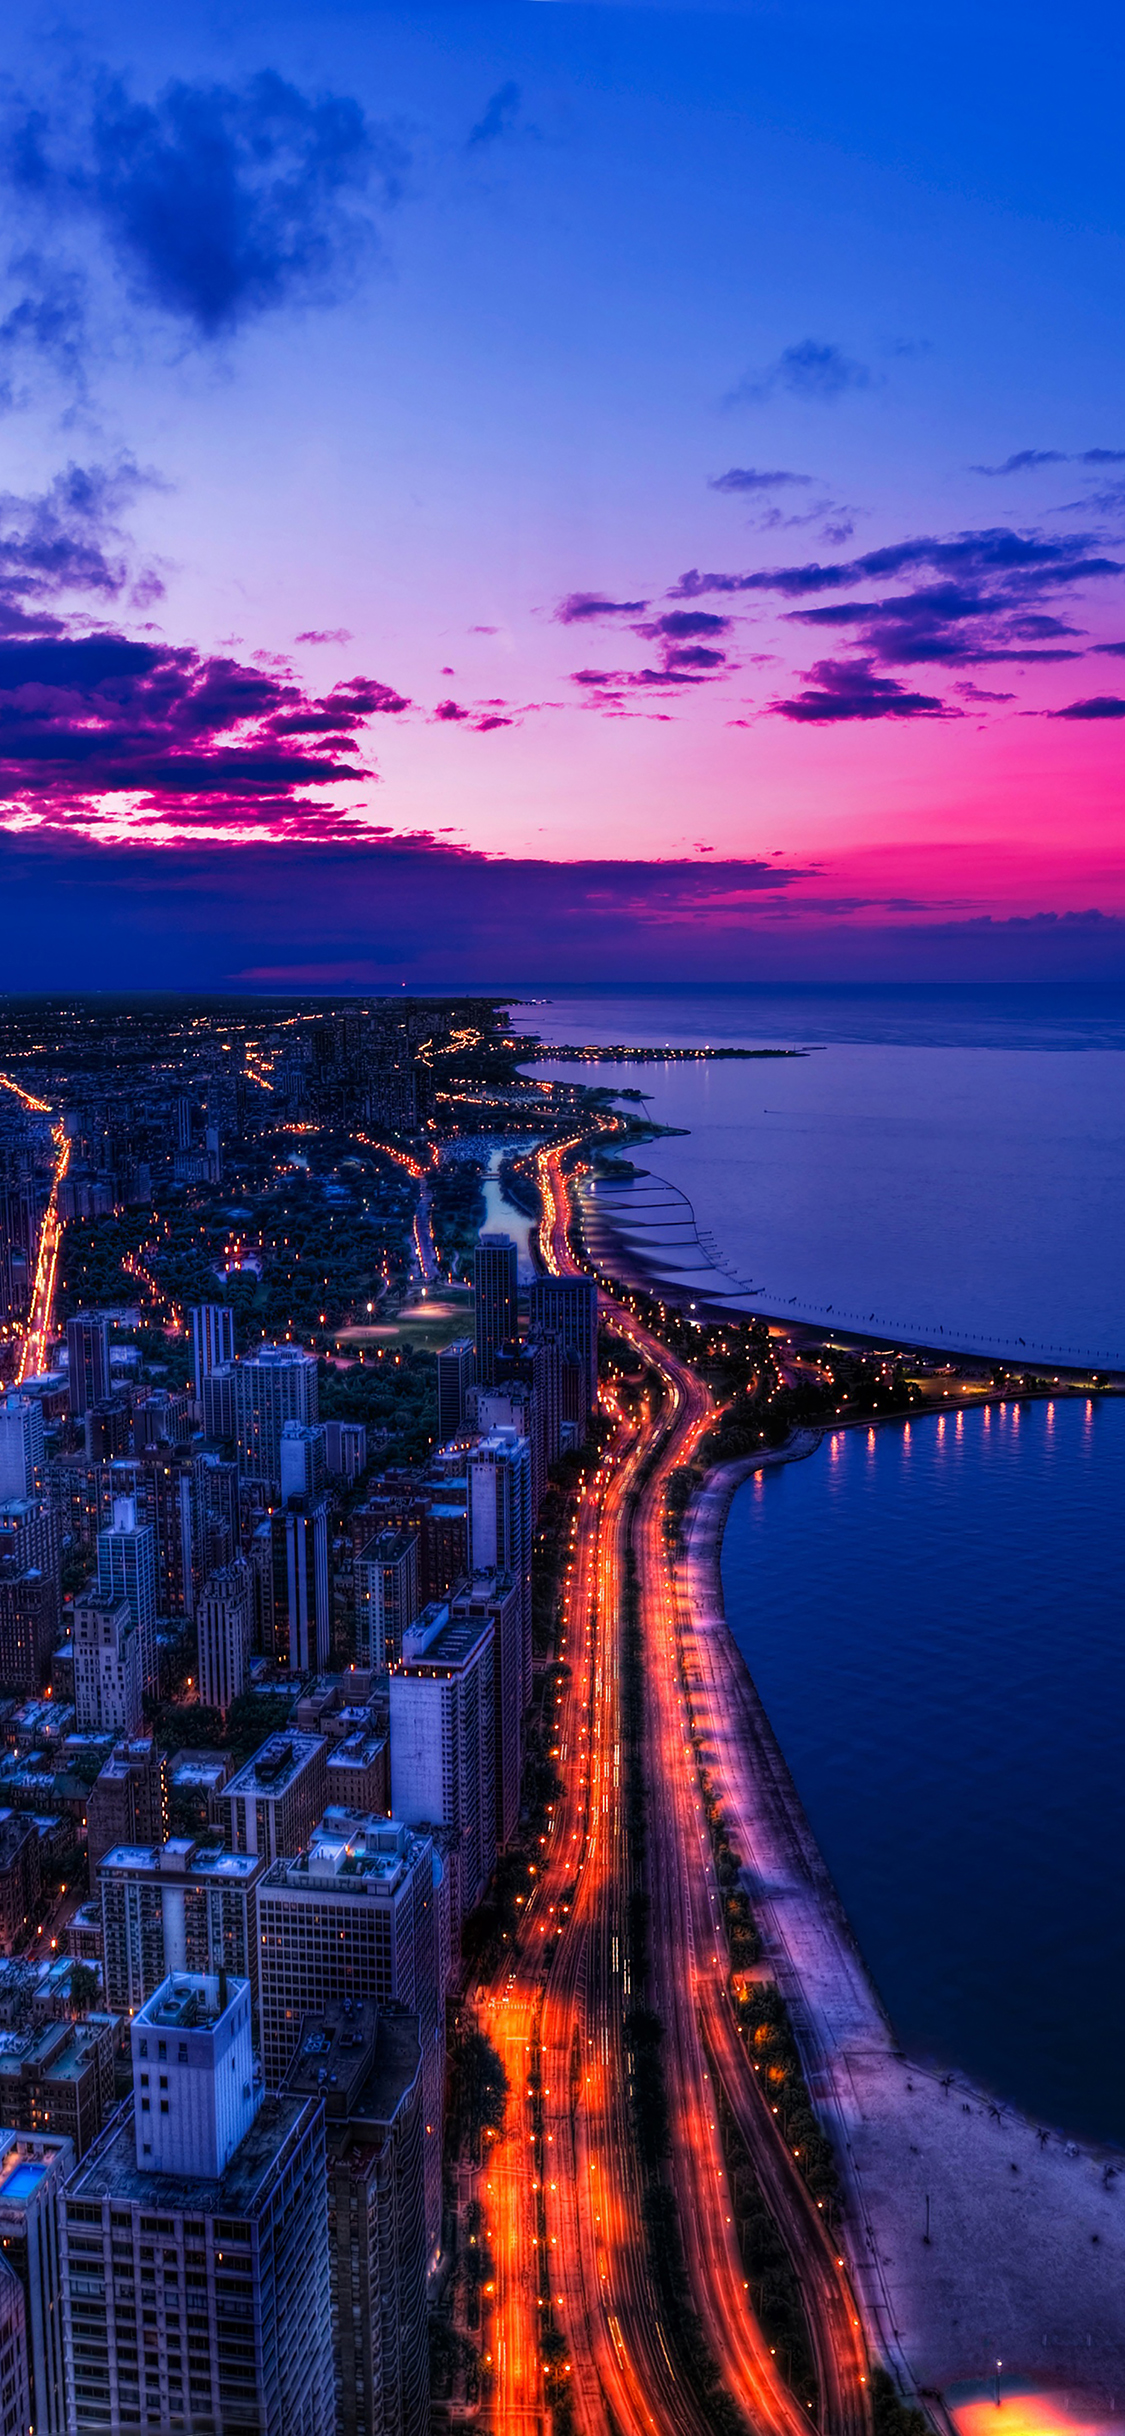 mh45-chicago-city-night-sky-view-scape-ocean-beach - papers.co